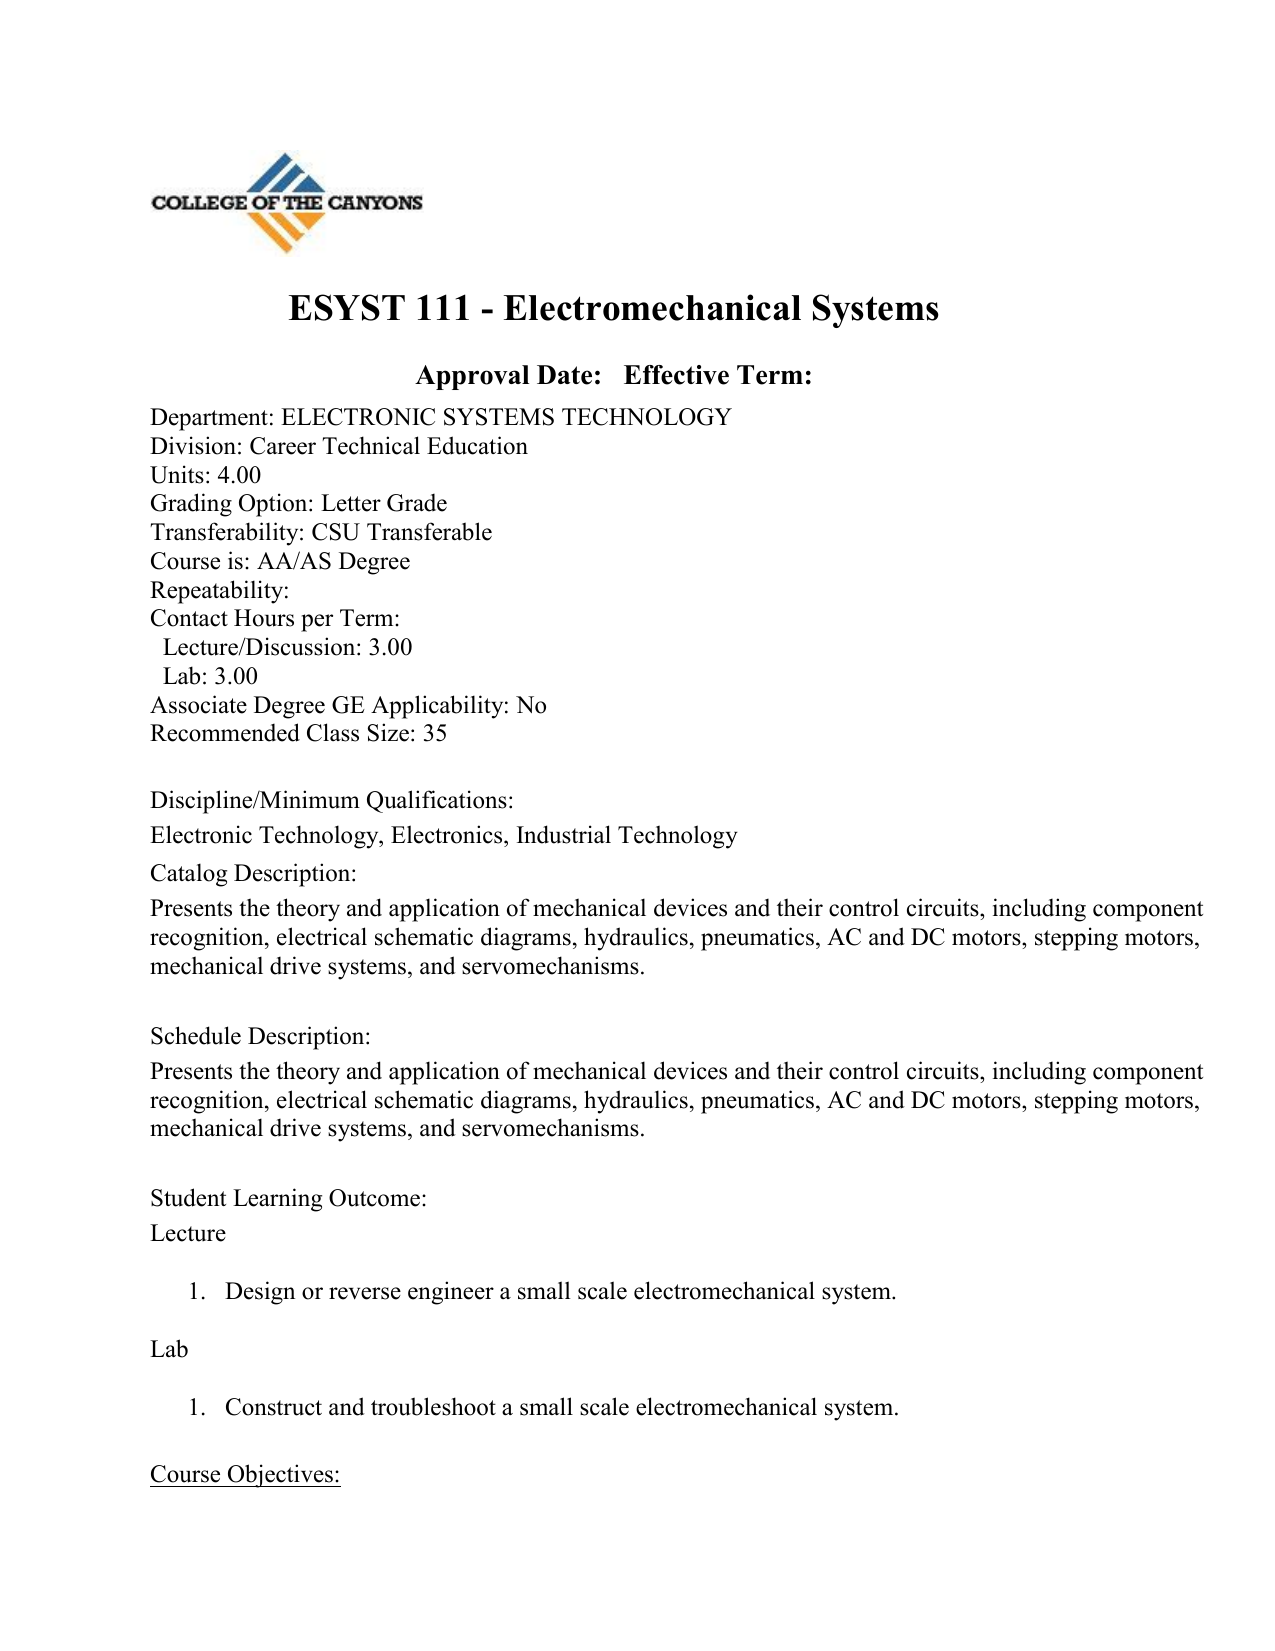 Esyst 111 Electromechanical Systems Ac Drive System Electric Schematic Diagram 018054761 1 75307ec5e16b9fe913a9228721c25132